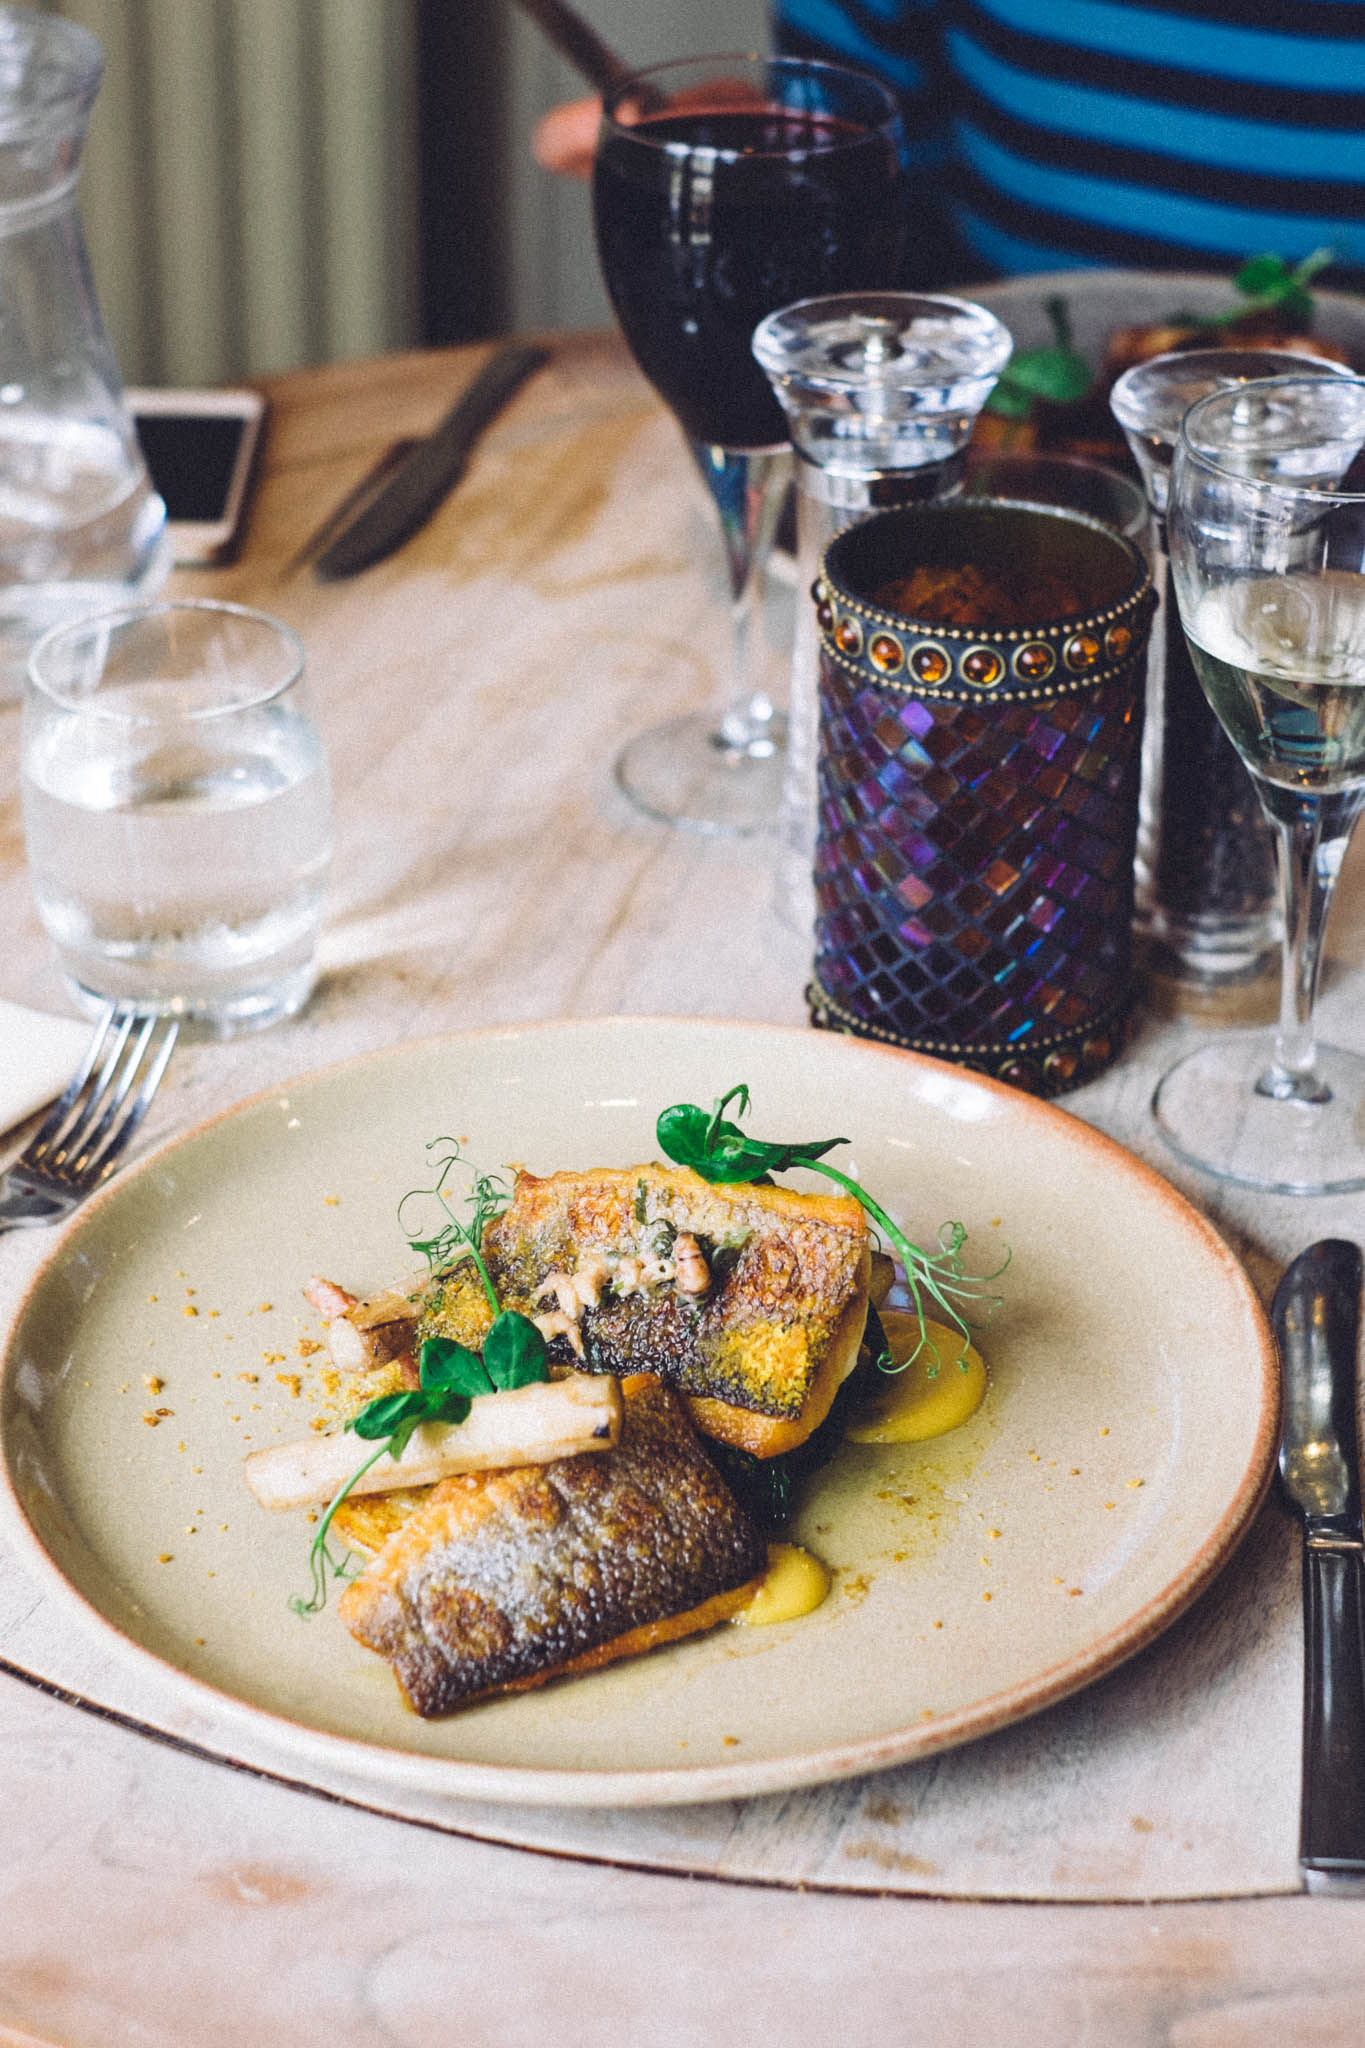 Places to Eat Near Chichester. The Earl of March - a traditional country pub offering fine food located near Goodwood. Photography by Emma Gutteridge for Retreat blog.